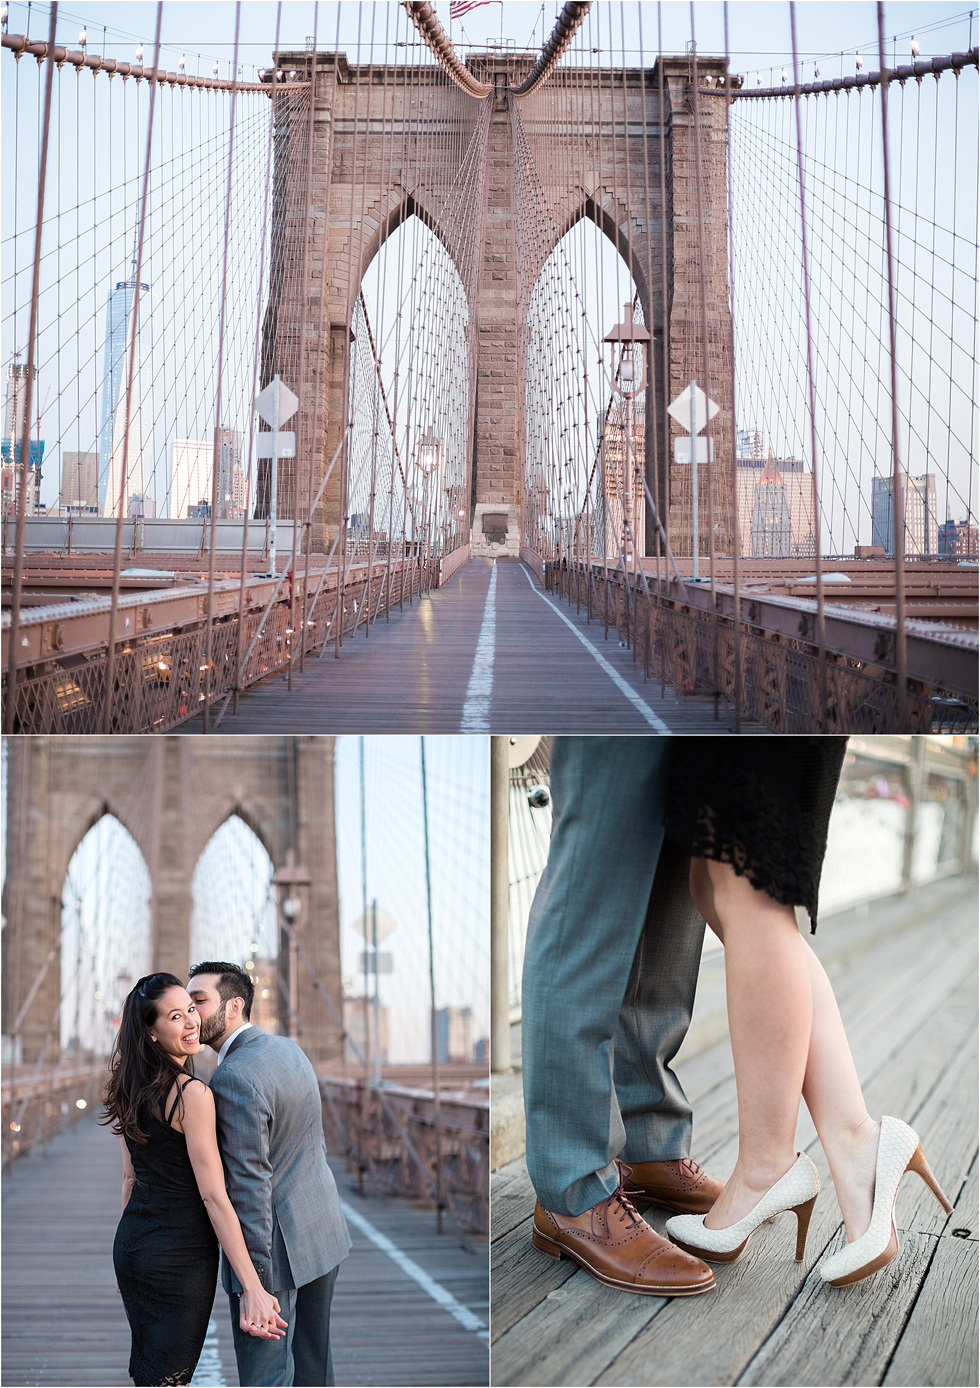 new_york_brooklyn_bridge_engagement_session_boston_wedding_photographer_photo0011